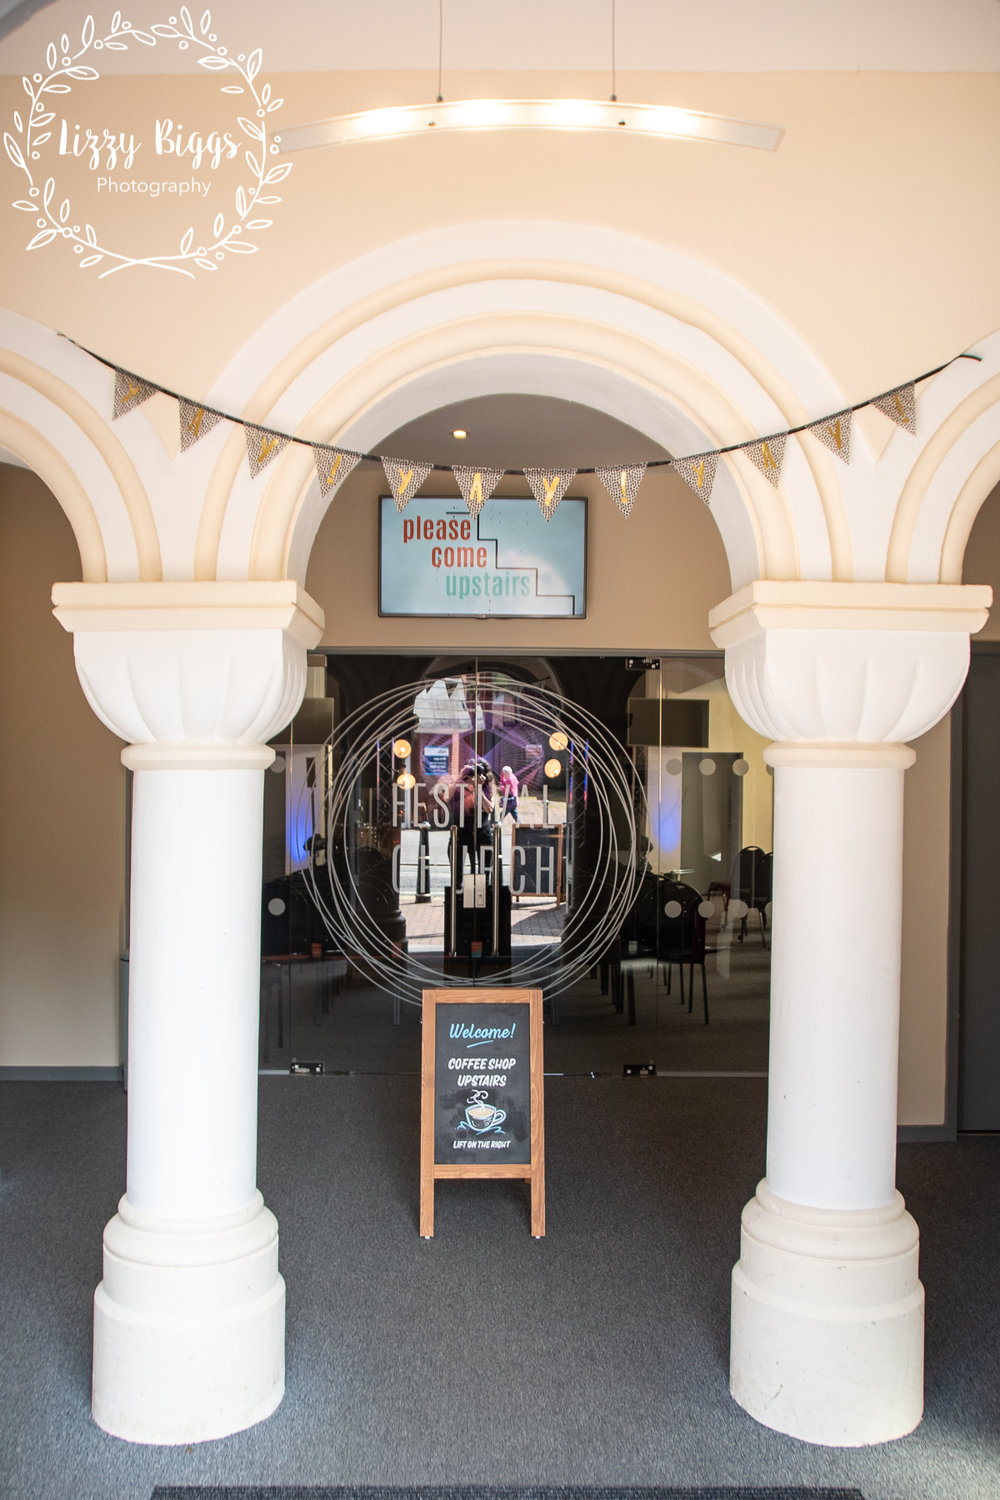 Lizzy-Biggs-Photography-Festival-Coffee-Chester-Entrance.JPG